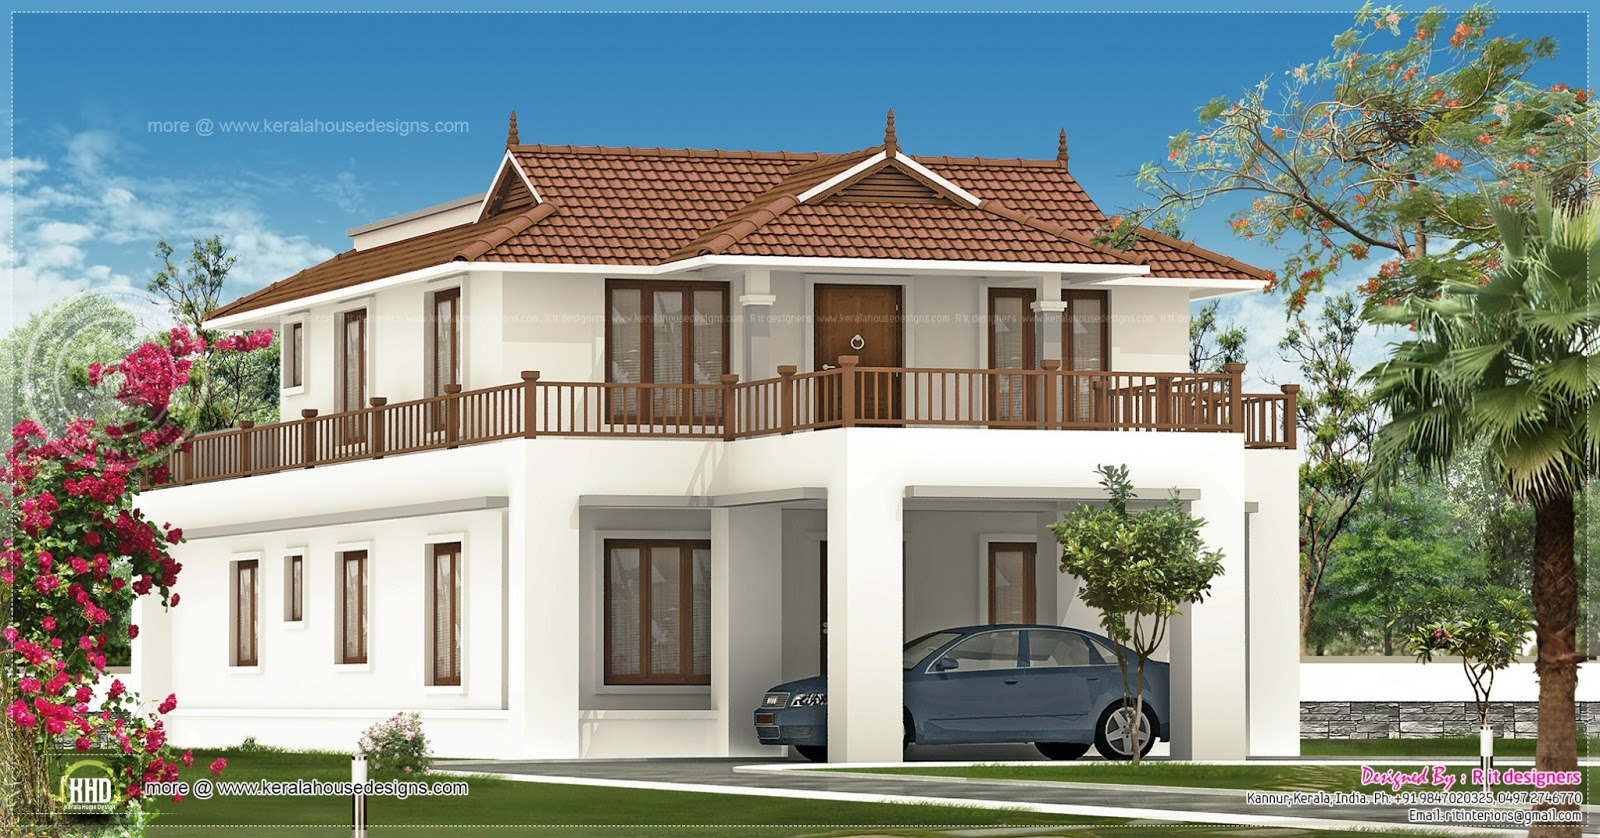 2820 square feet house exterior design home kerala plans for Home designs exterior